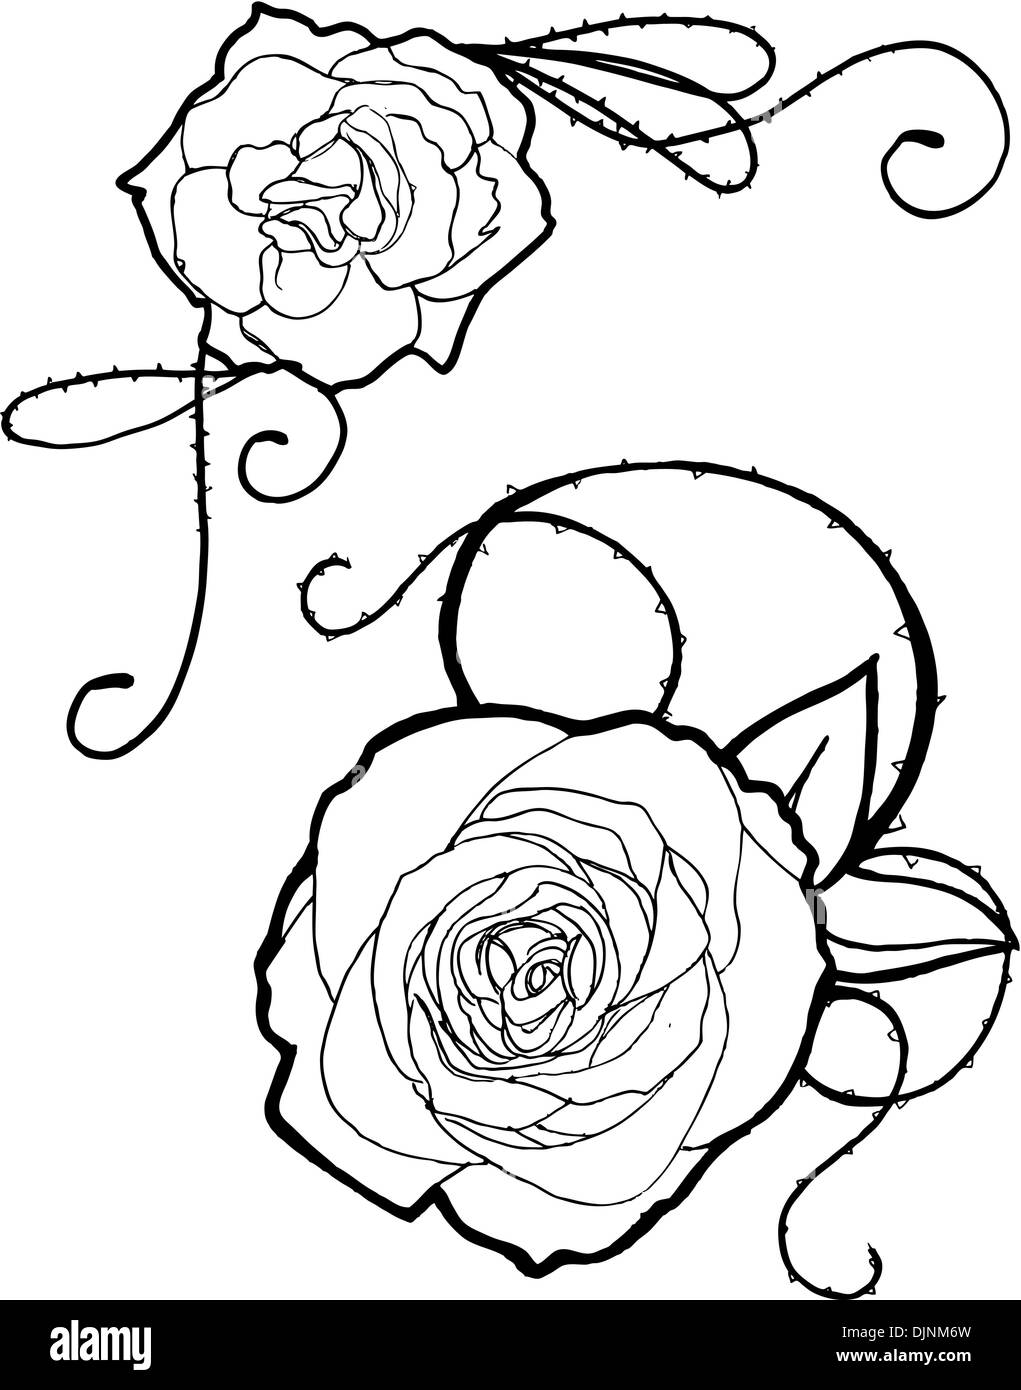 Rose Barbed Wire Black And White Stock Photos Images Alamy Book Wiring Simplified Hand Drawn Roses Image